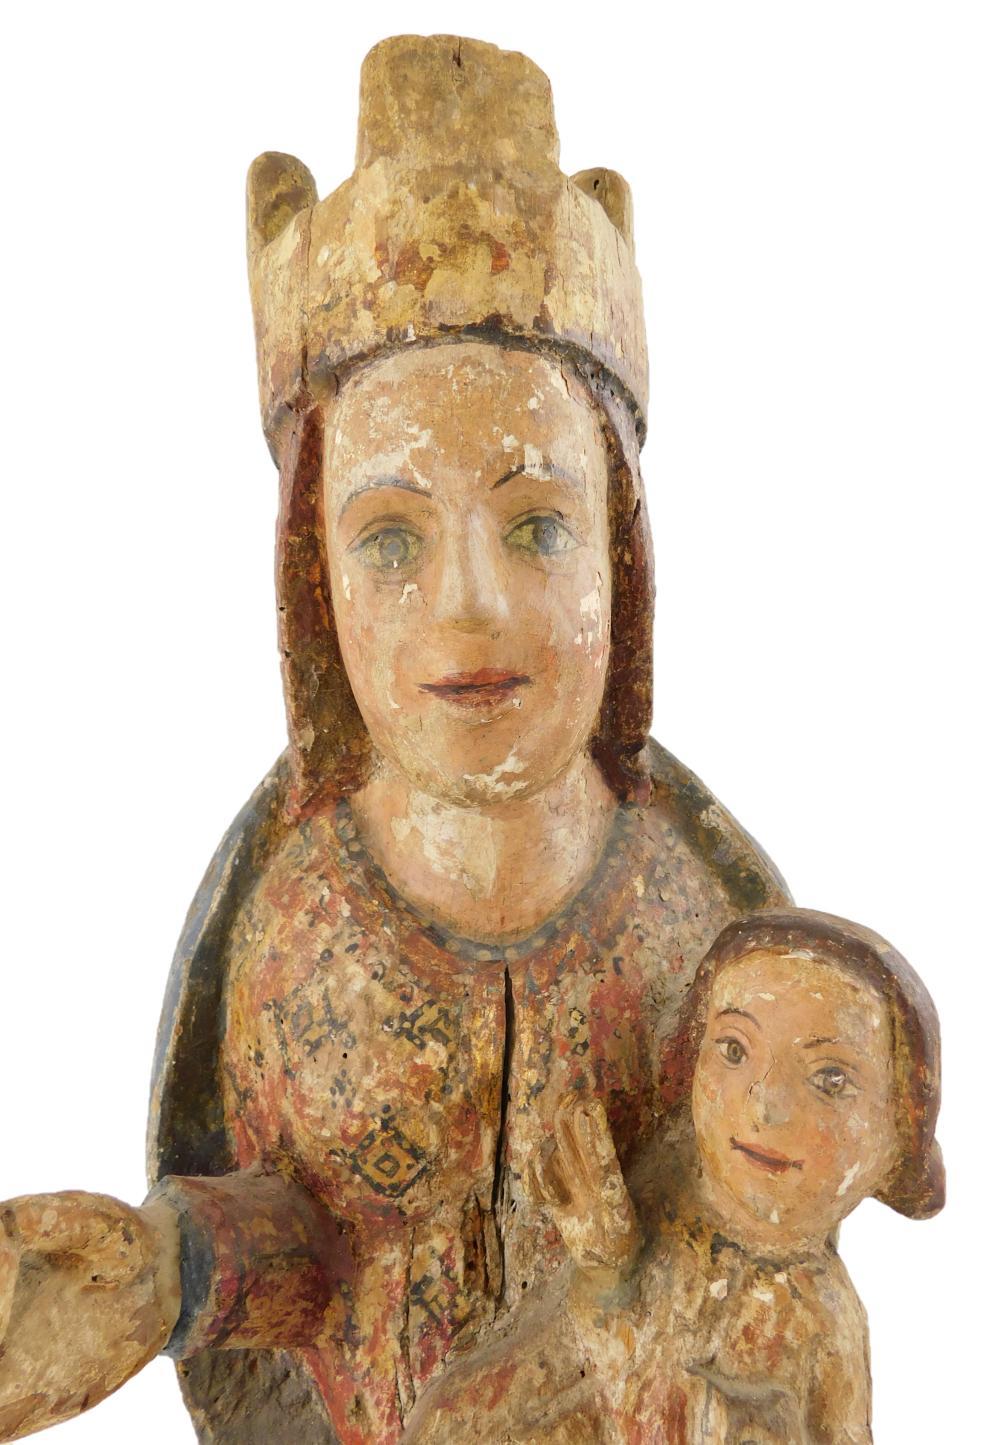 Virgin and Child wood sculpture, possibly Spanish, medieval, with carved wooden wall bracket, traces of polychrome and gilding, devo...